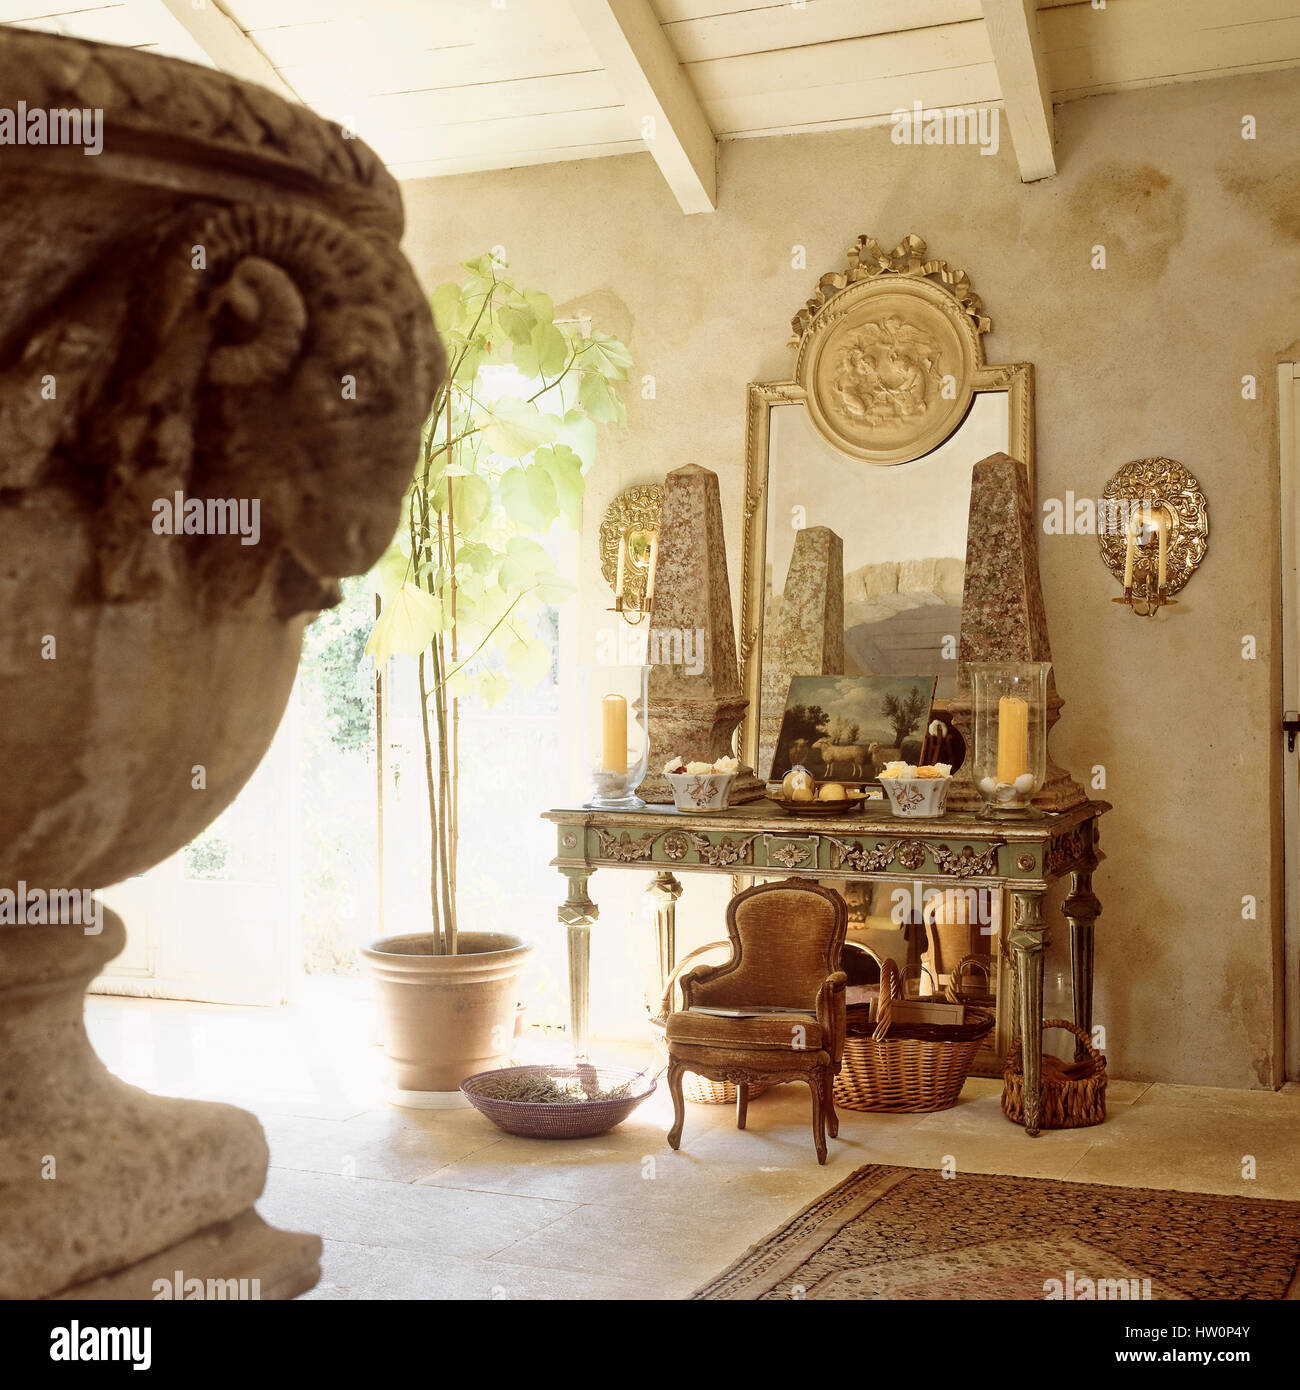 Marvelous Table Of Antiques In Arabic Style Room Stock Photo Home Interior And Landscaping Elinuenasavecom